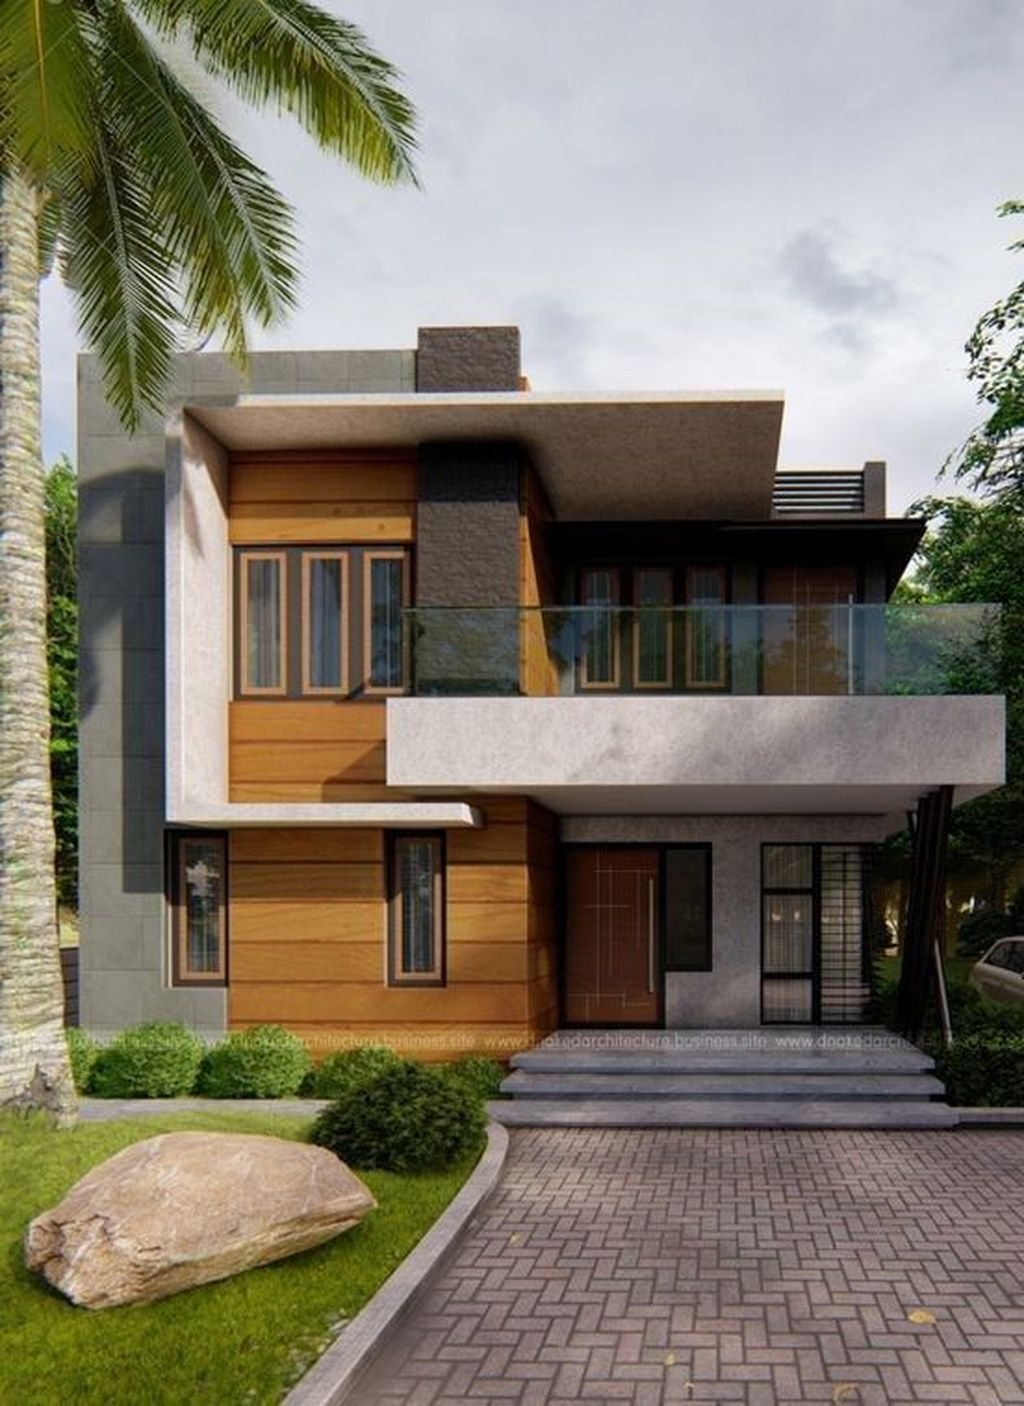 Small House Plans Focus On An Effective Use Of Area That Makes The Home Feel Larg Philippines House Design Small House Design Philippines Modern Bungalow House